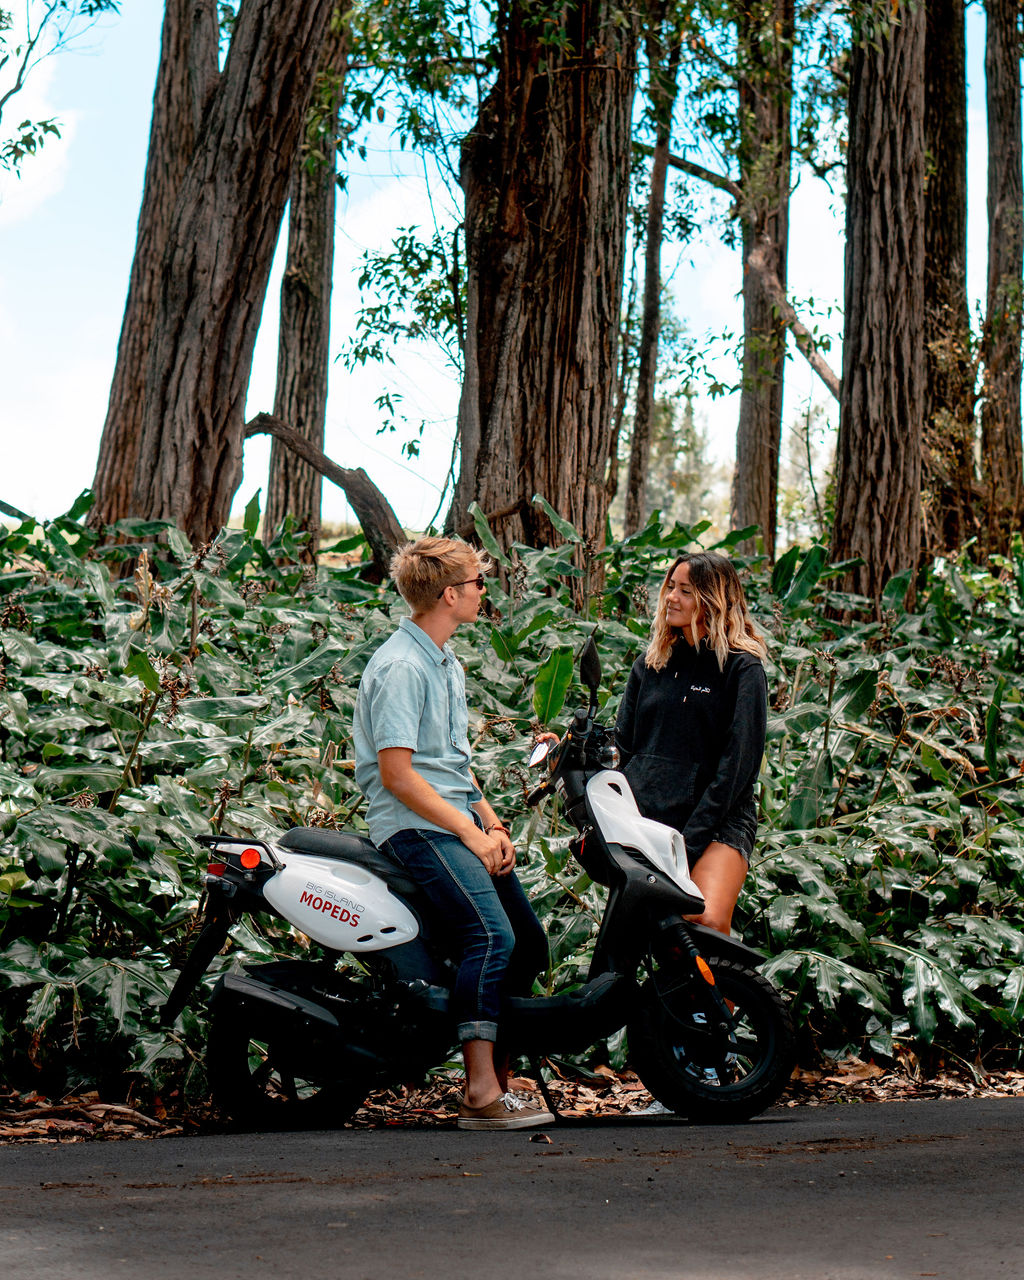 Big Island Kona Moped Rentals Fleet